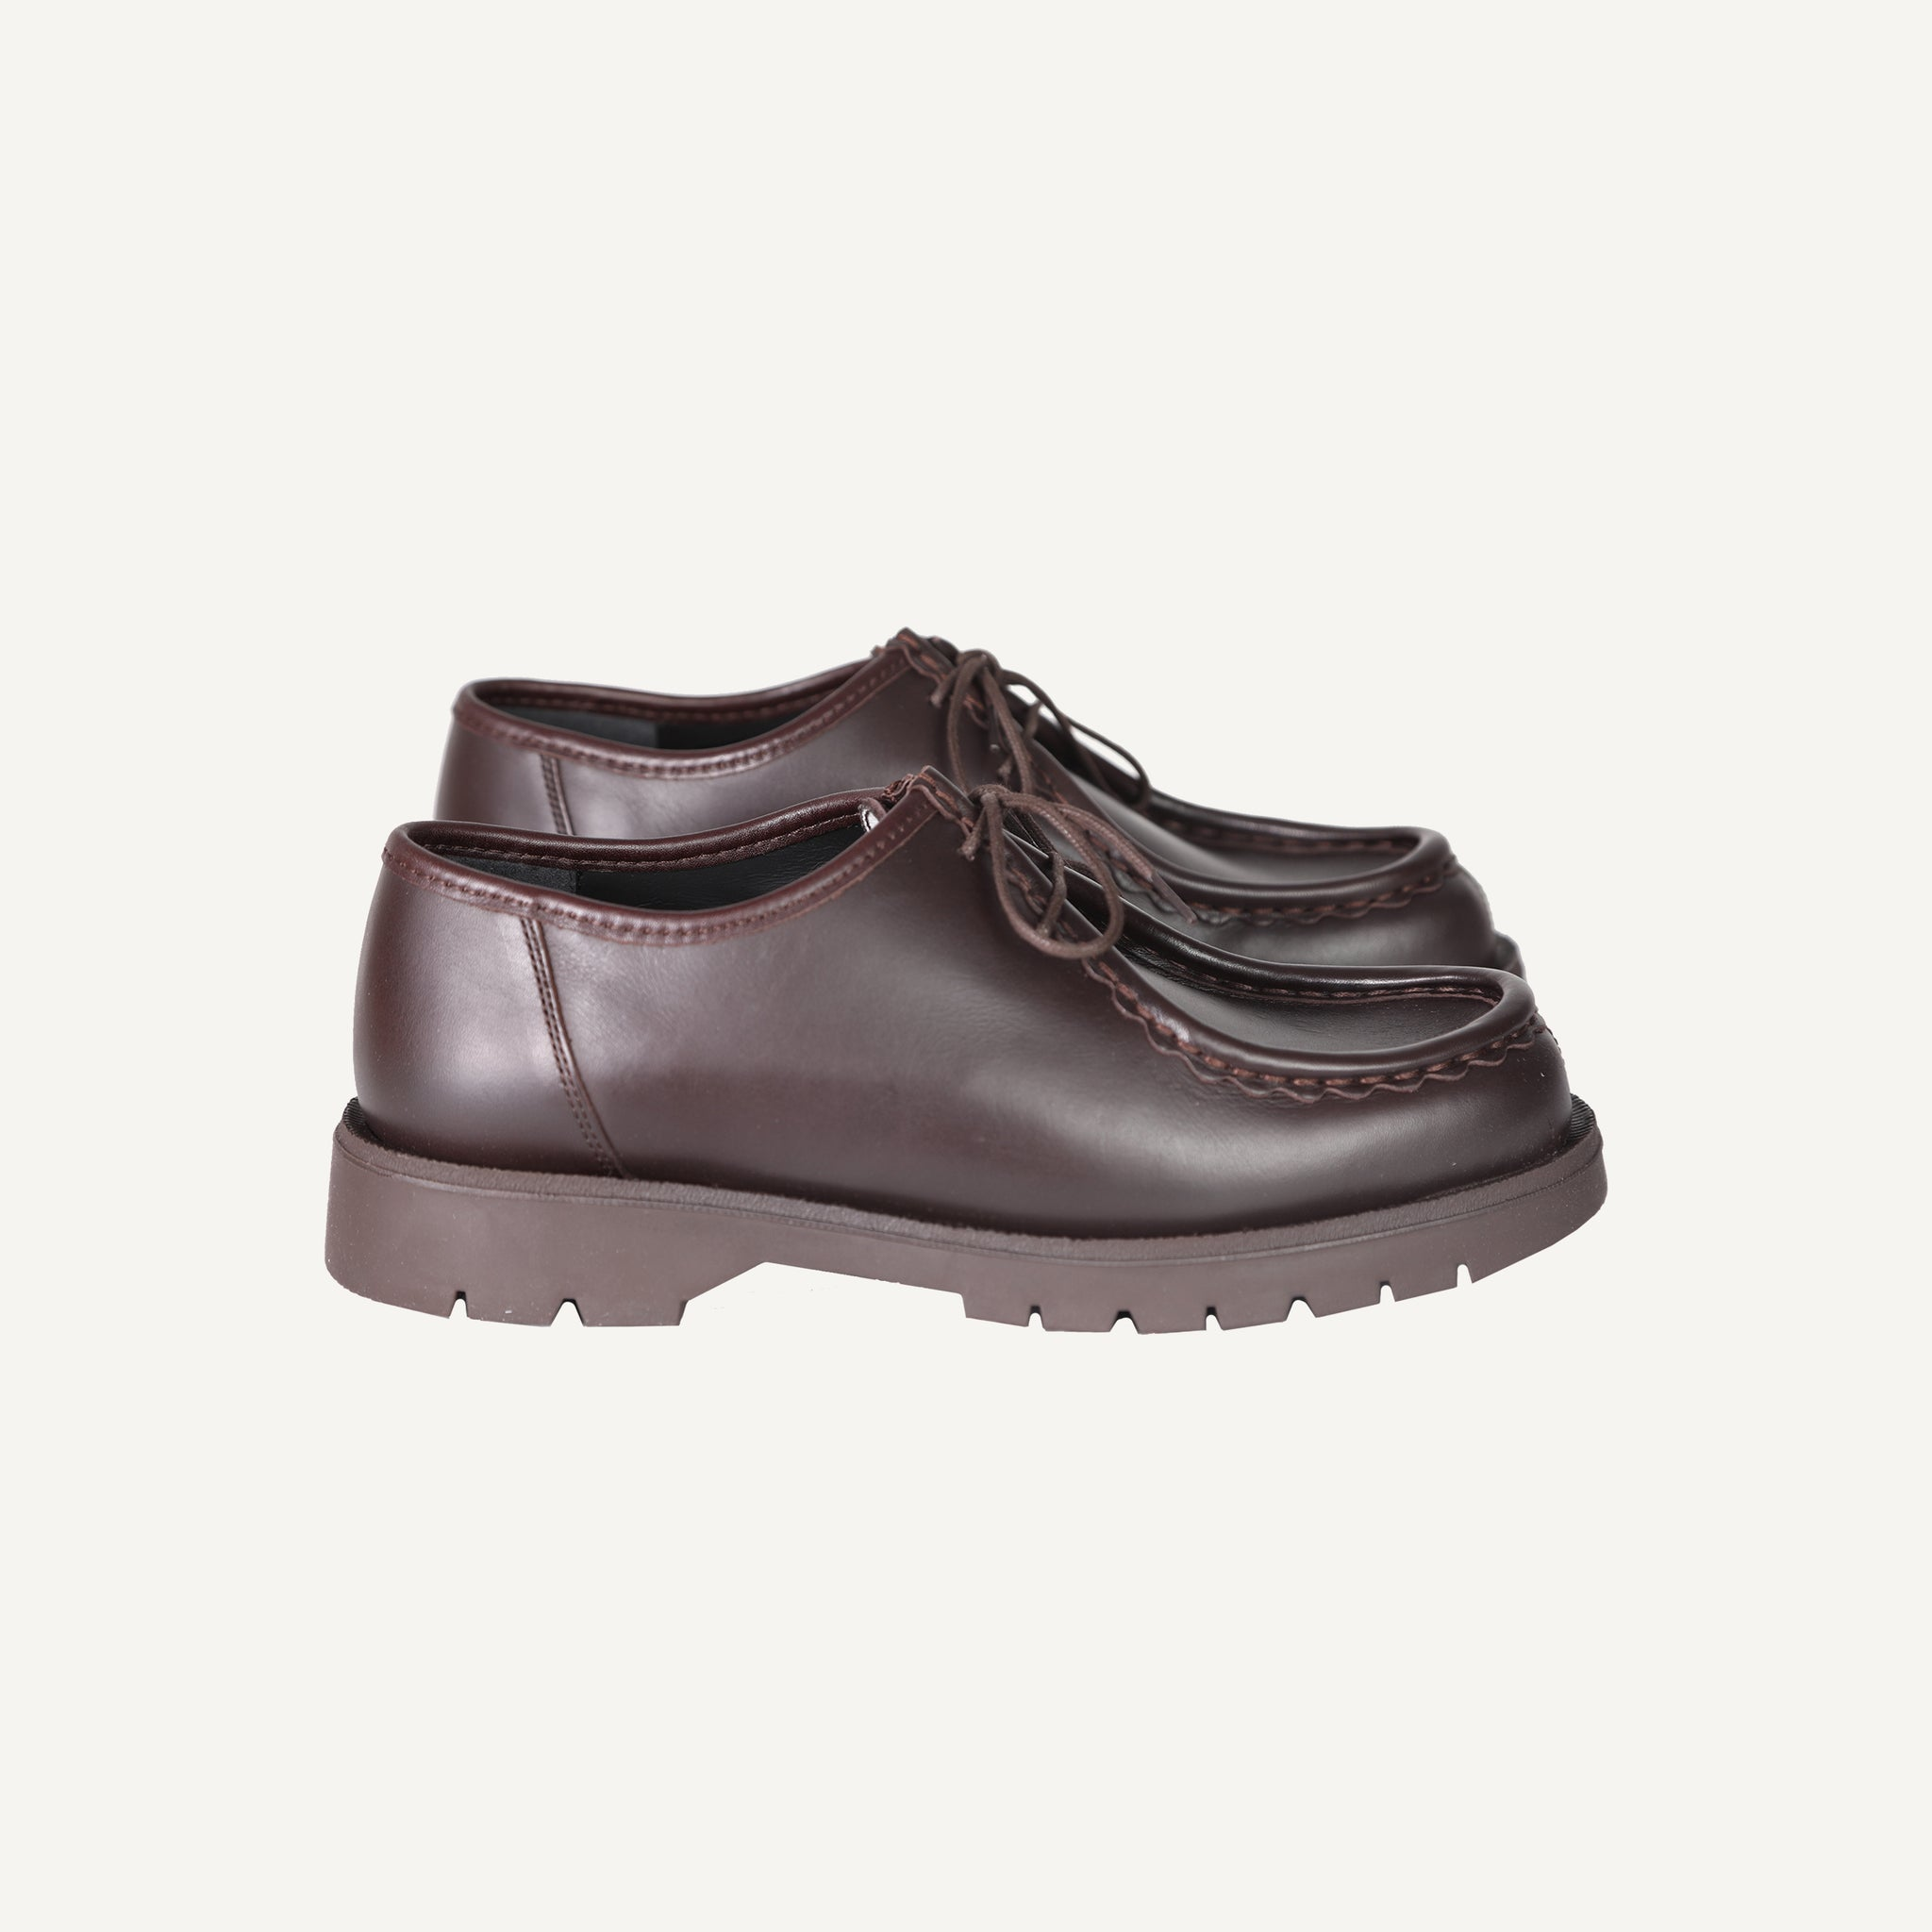 KLEMAN + PLAIN GOODS CHOCOLATE PADROR SHOES